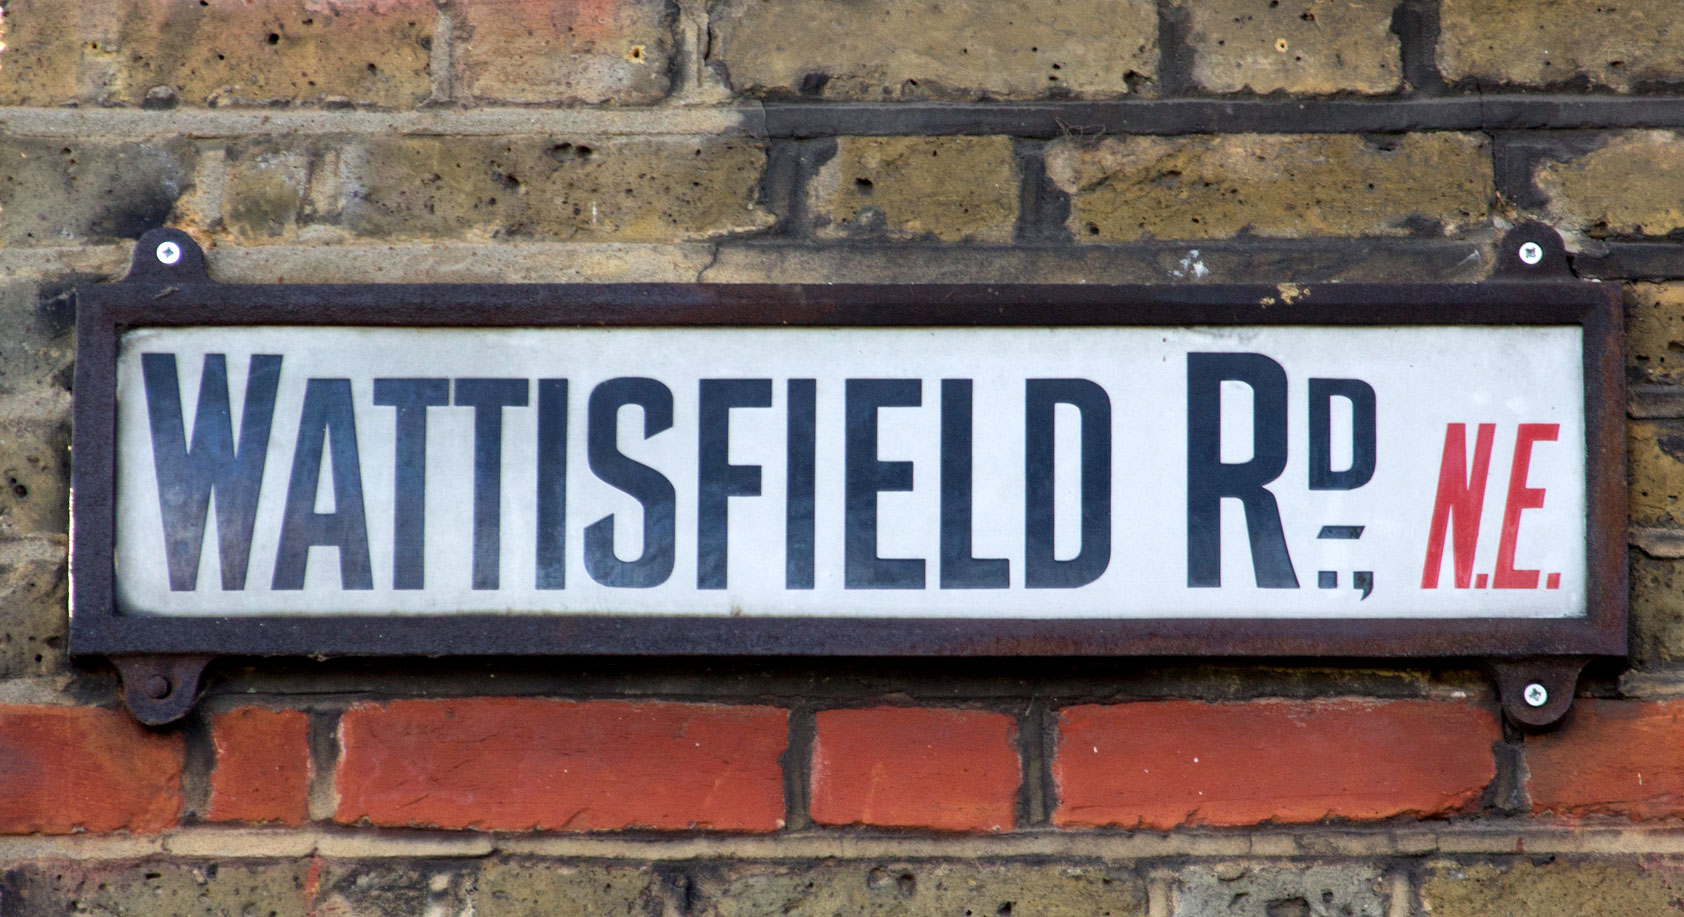 The sign below, from the abolished London postal district of N.E., has a  similar style, though slightly more condensed, with sharper terminals on  the S, ...